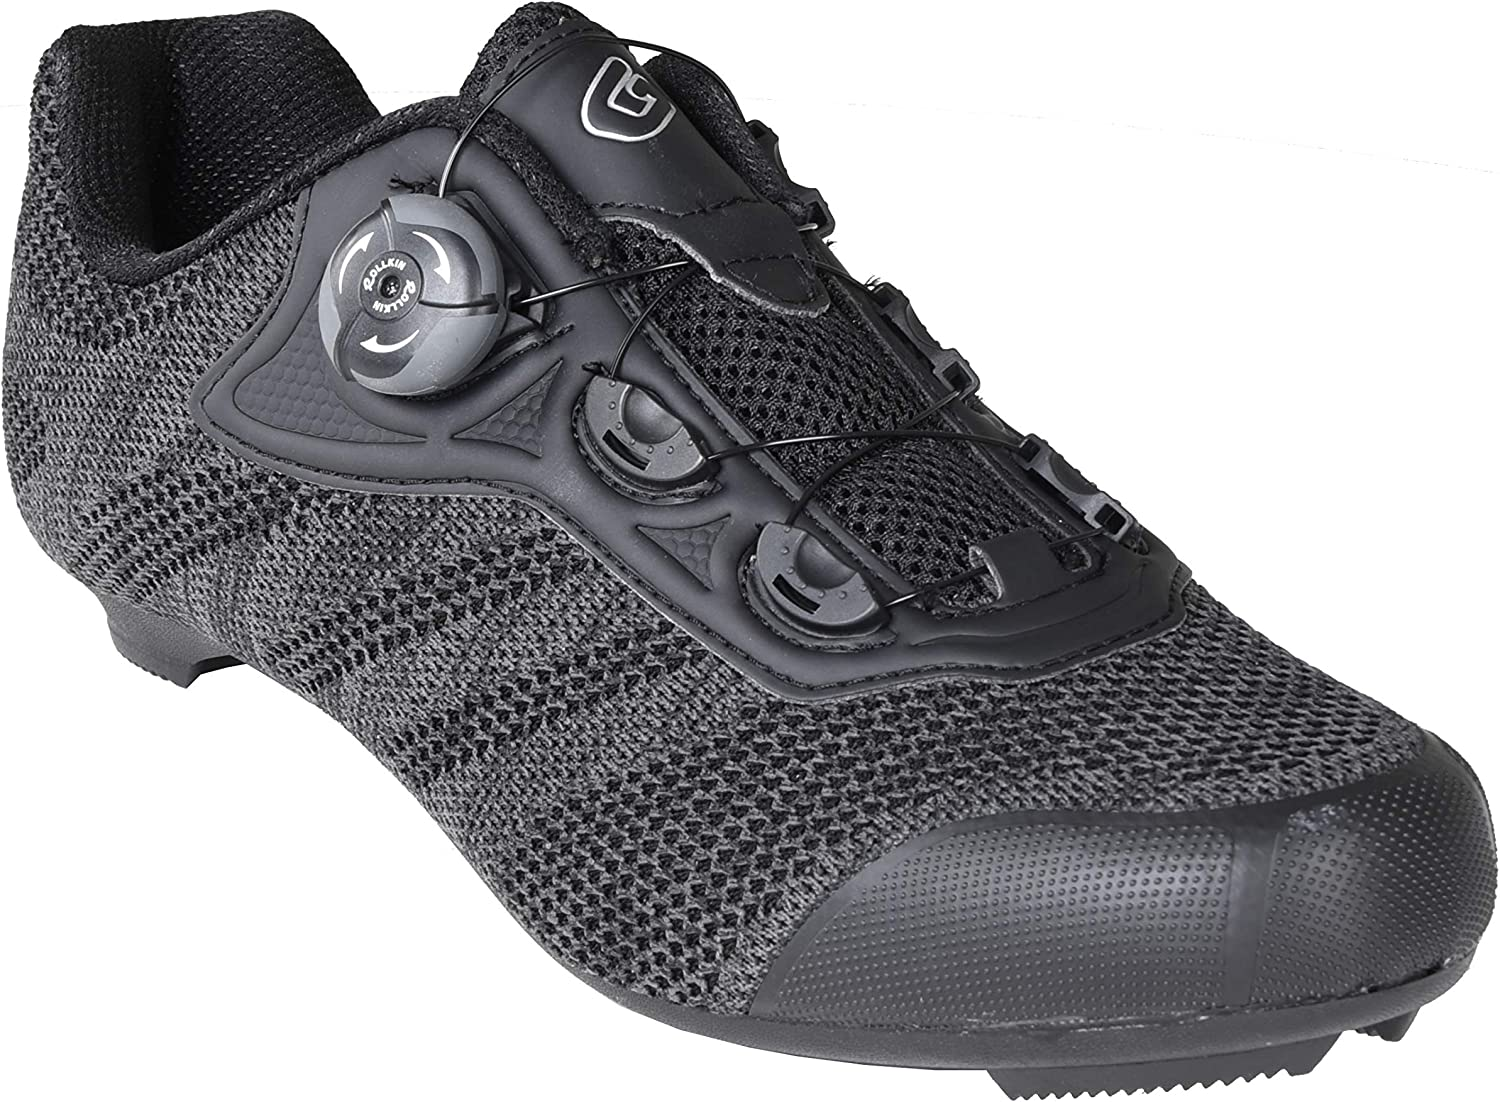 Quick Lace Gavin Pro Road Cycling Shoe 3 Bolt Road Cleat Compatible